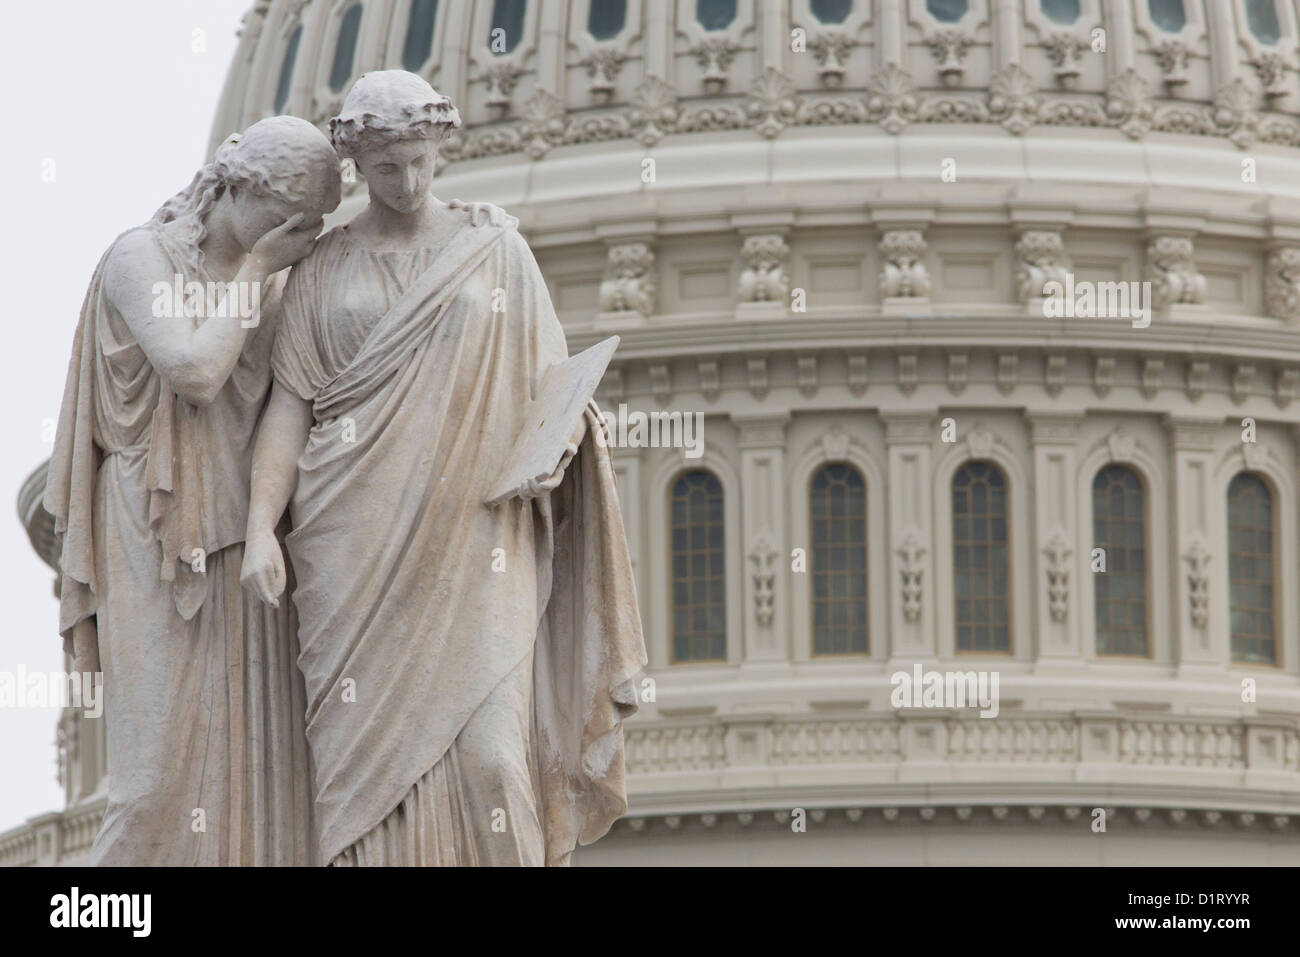 Views of the United States Capitol building, home of the United States Congress.  - Stock Image